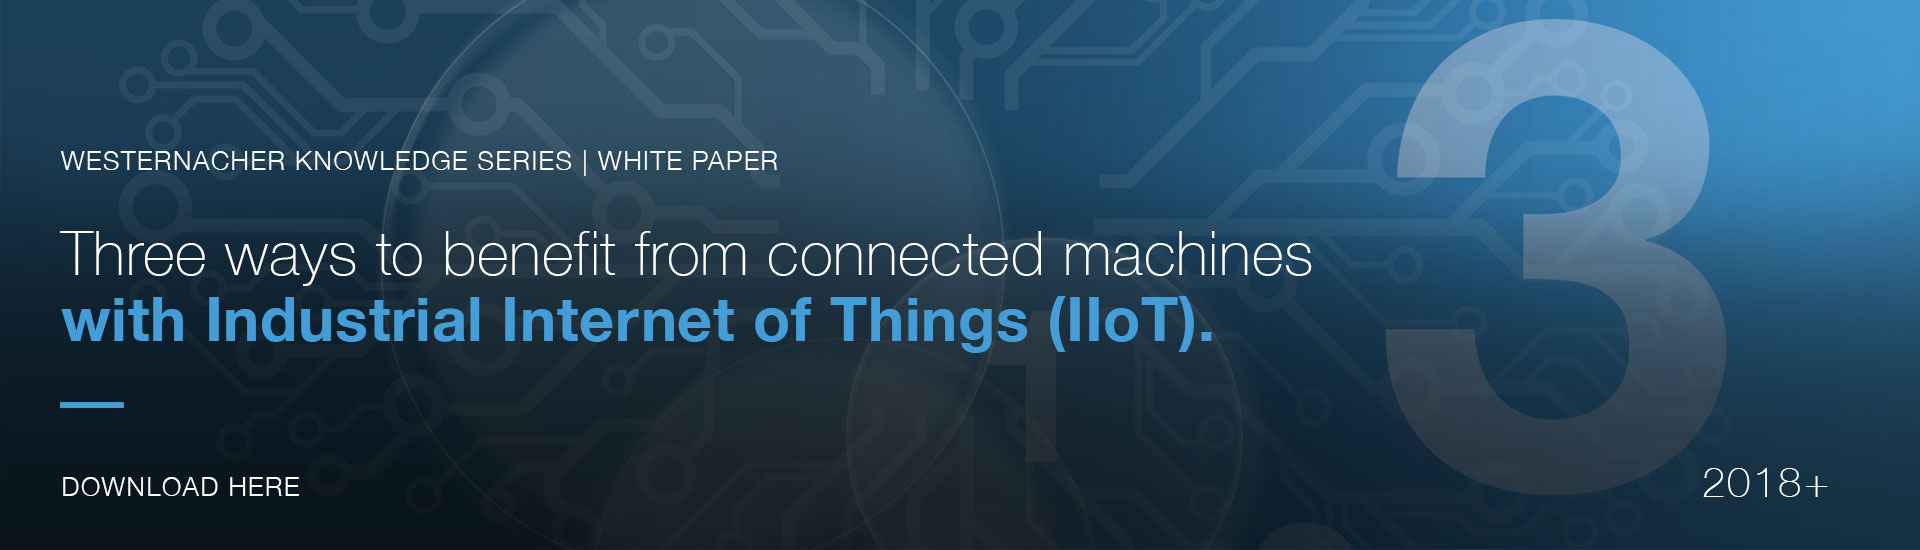 Industrial Internet of Things: 3 ways to benefit from connected machines.